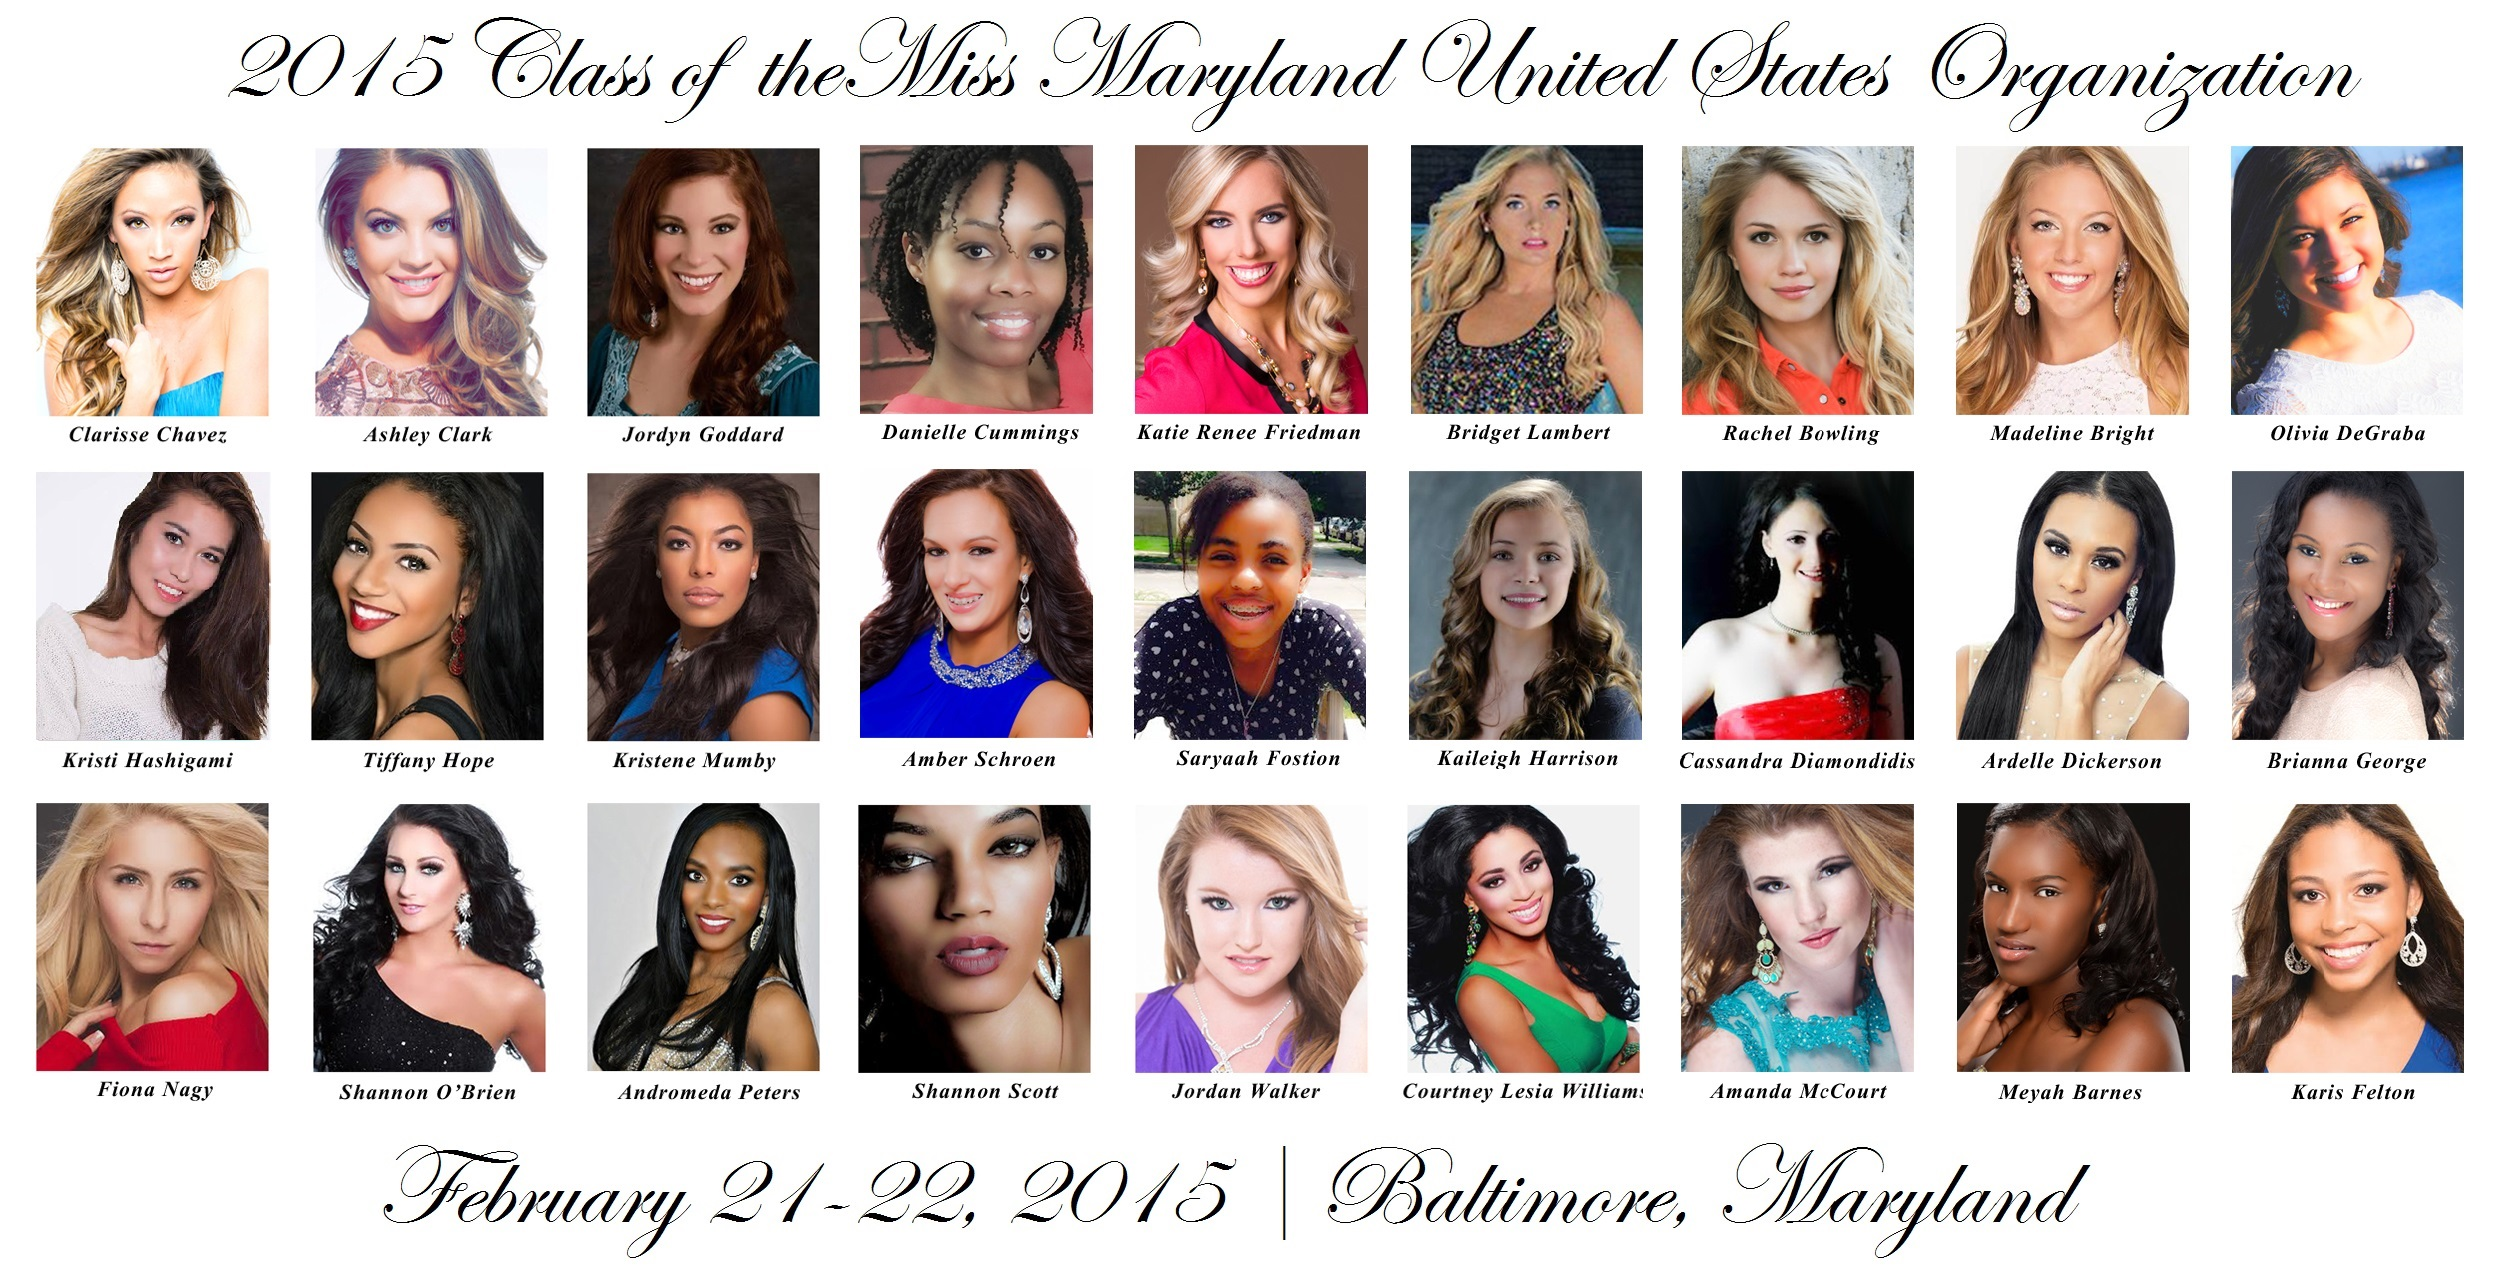 2015 Class of the Miss Maryland United States Organization